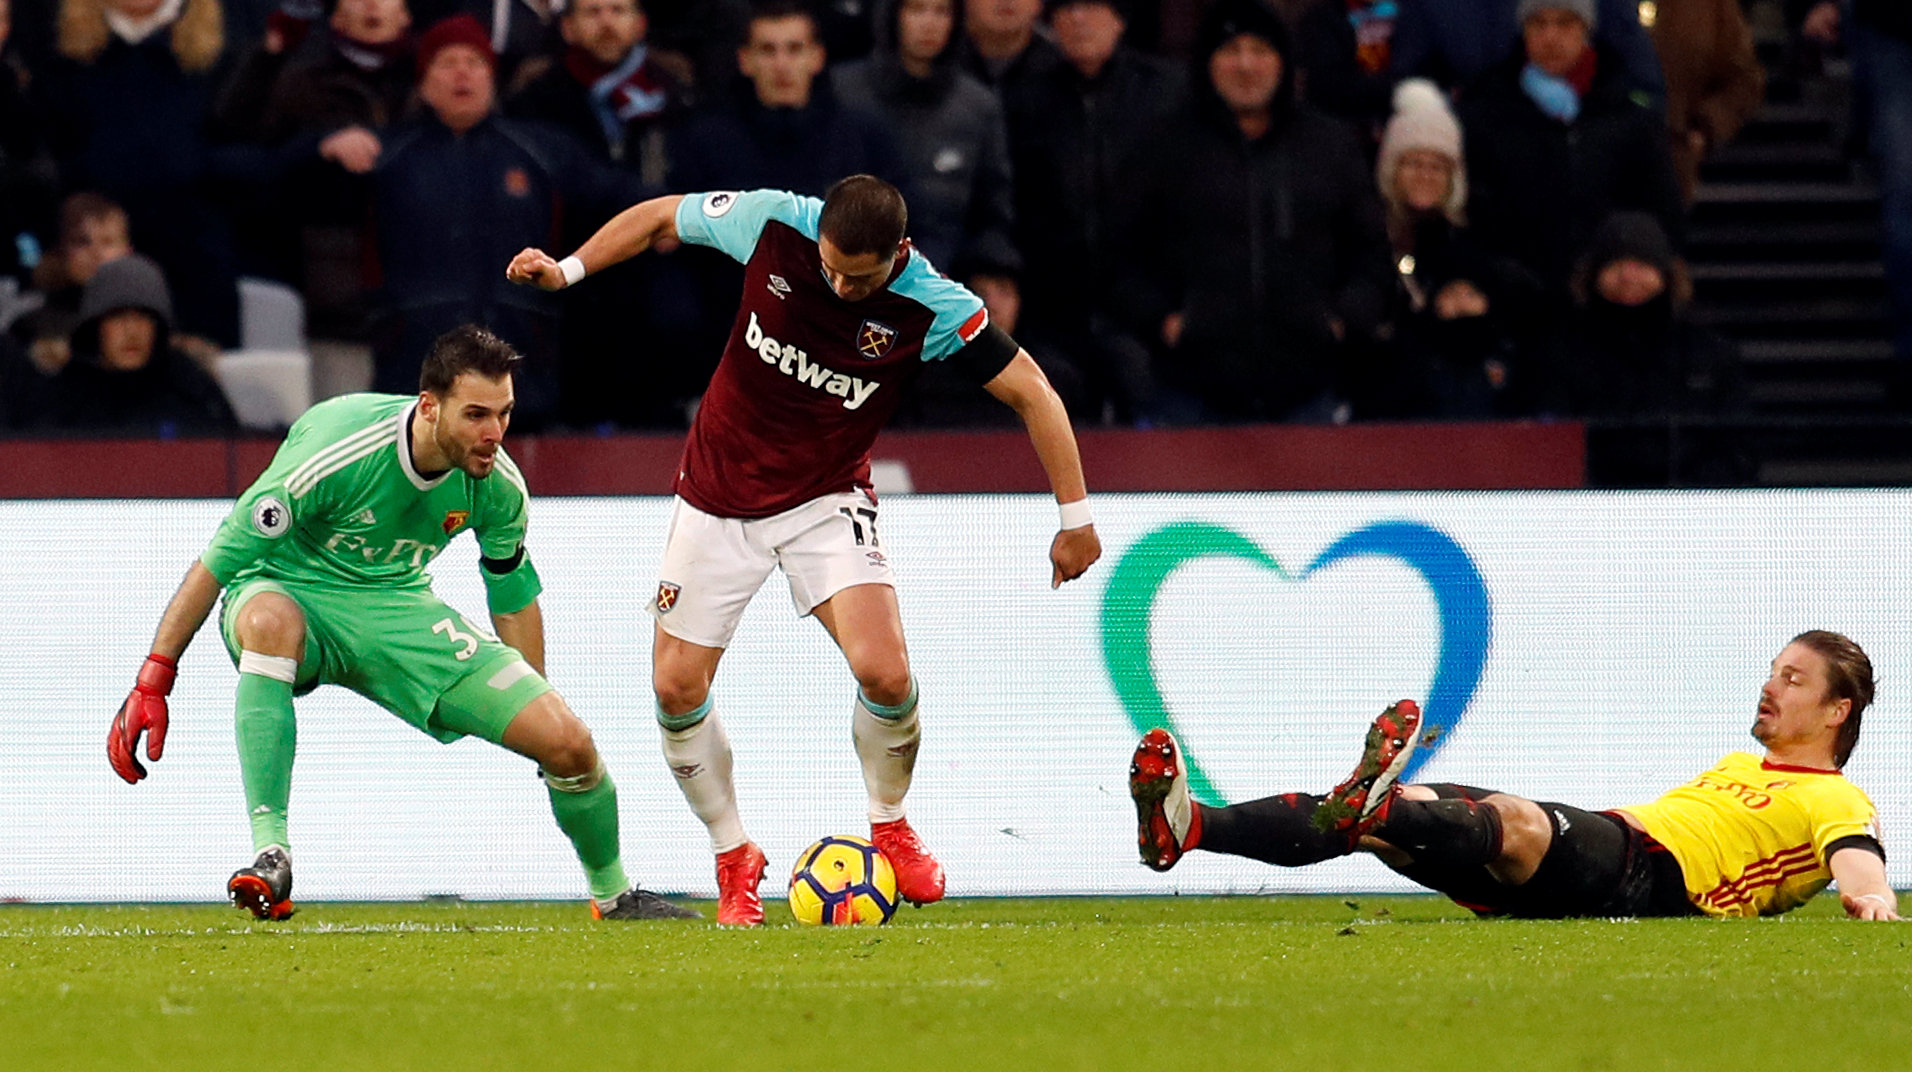 Defender may feature vs Watford, Moyes gives positive update on key duo